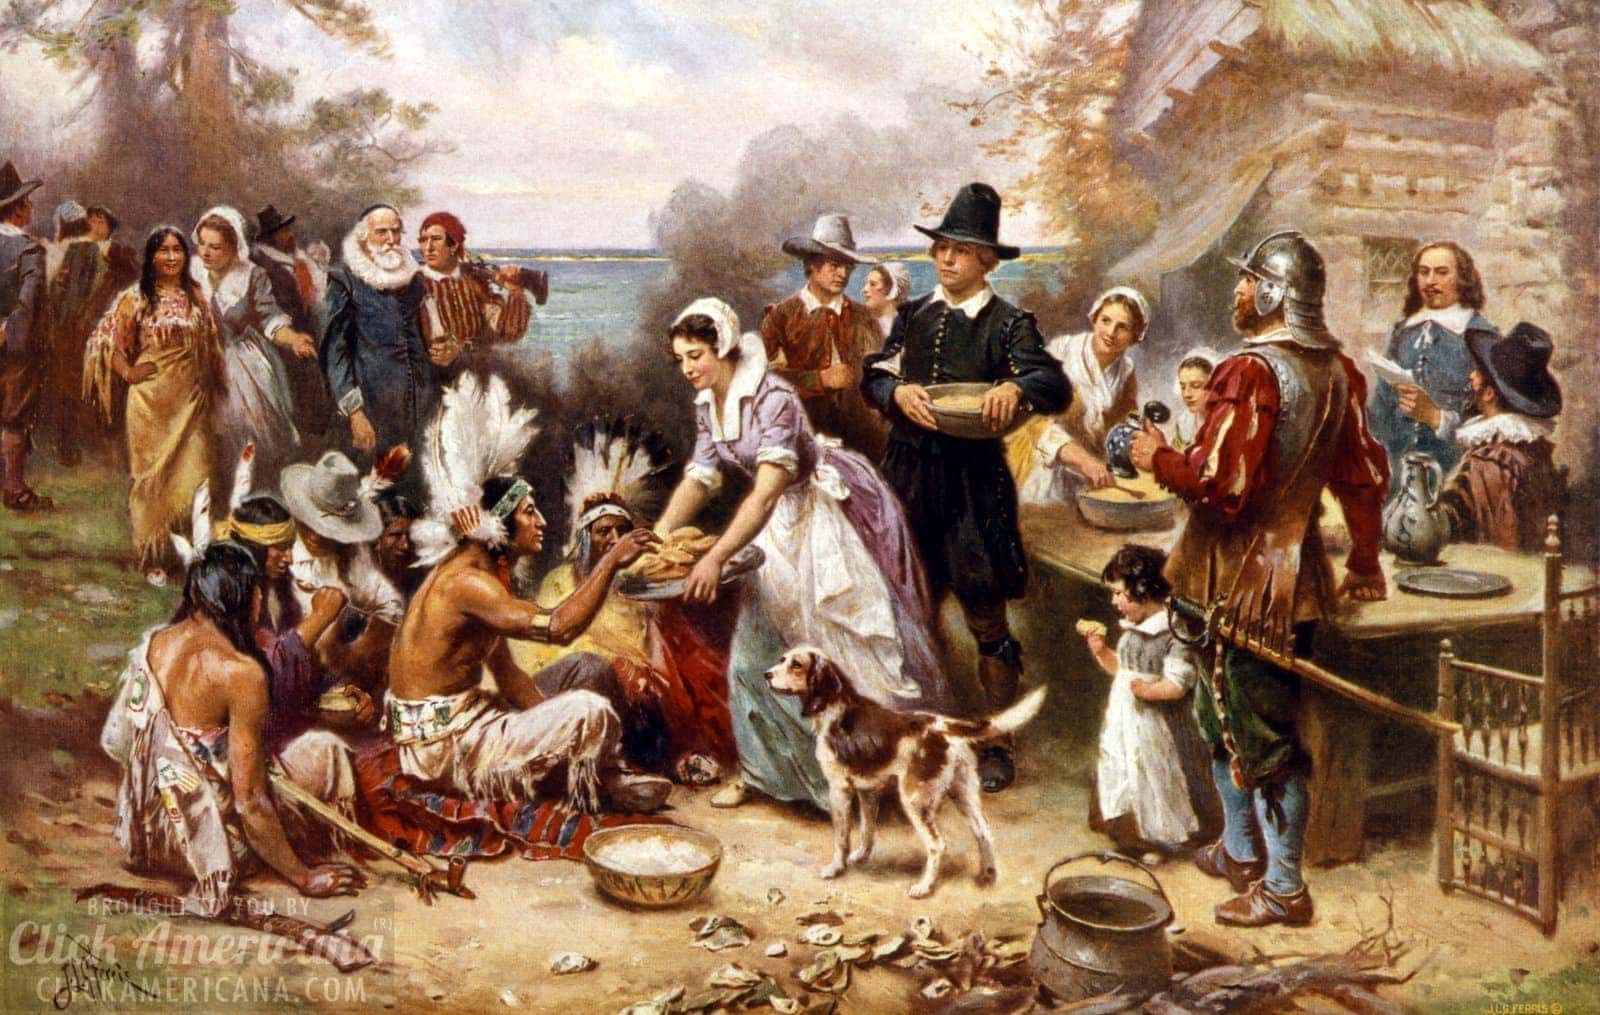 Thanksgiving history, from the Pilgrims' First Thanksgiving to the strange way turkey day became a holiday - Click Americana